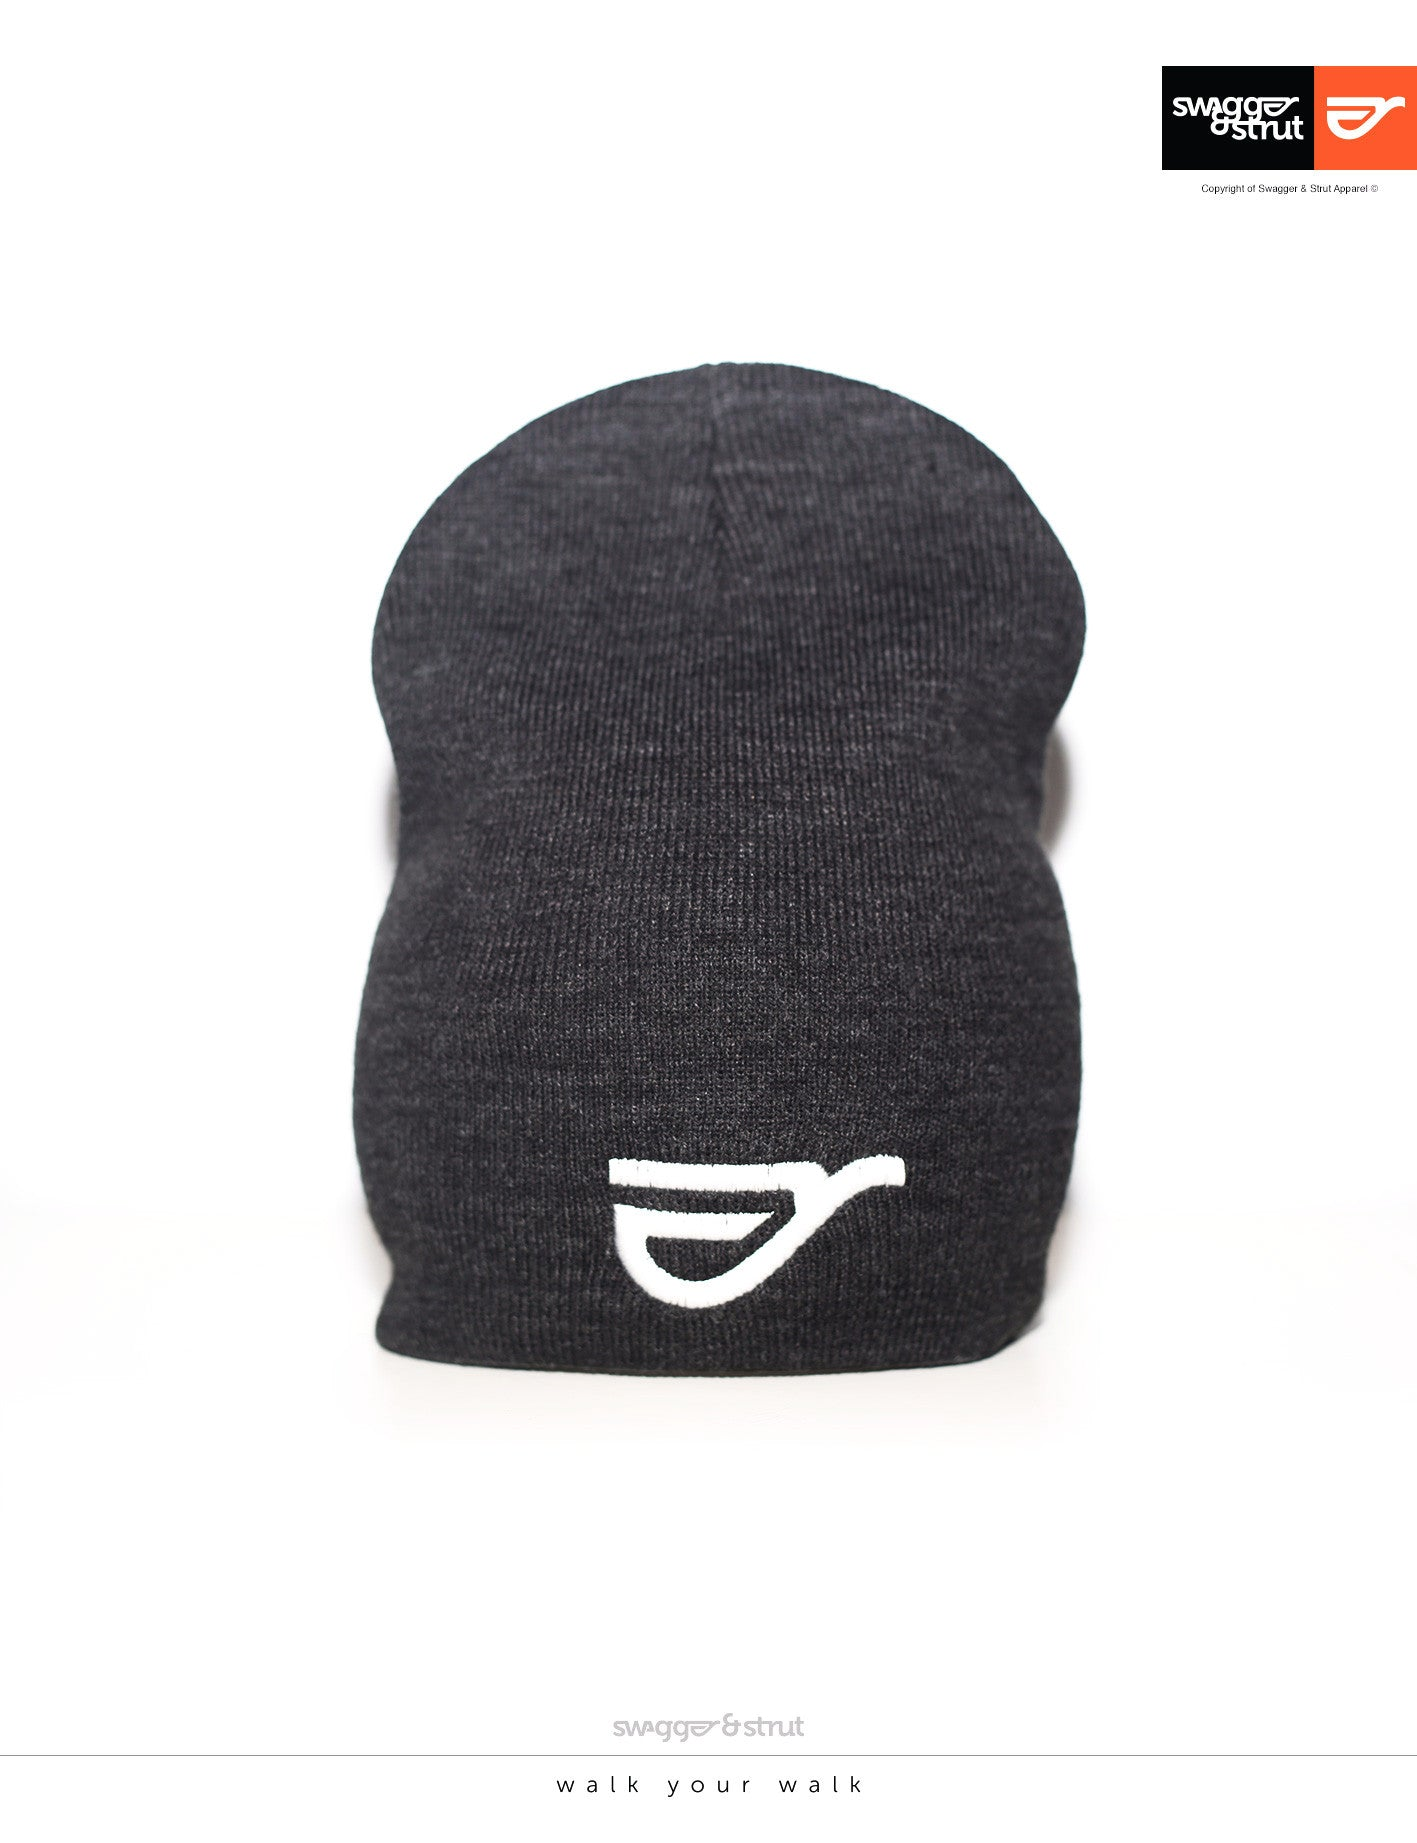 Charcoal Beanie with Swagger & Strut Embroidered logo